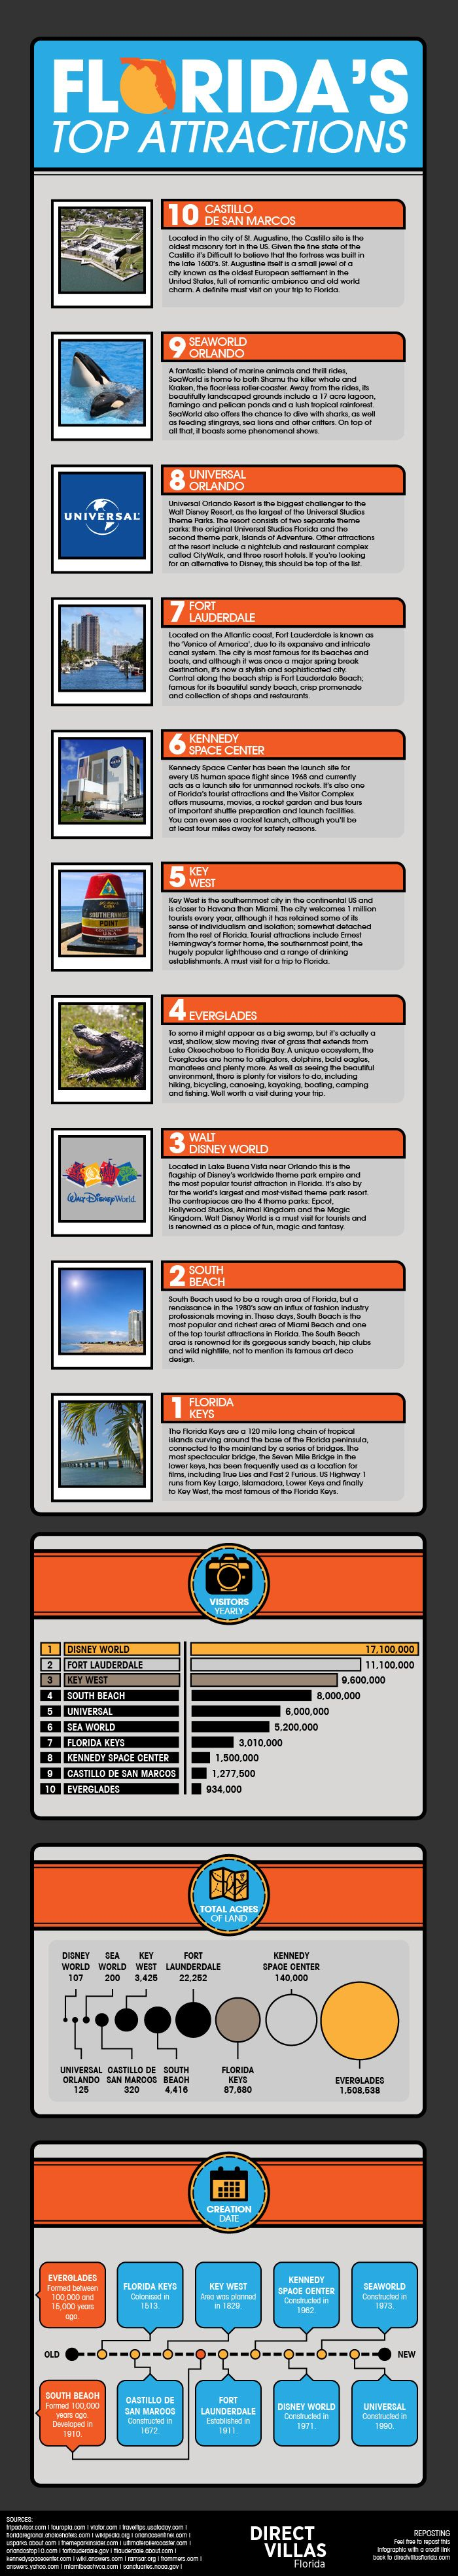 awesome infographic about Florida